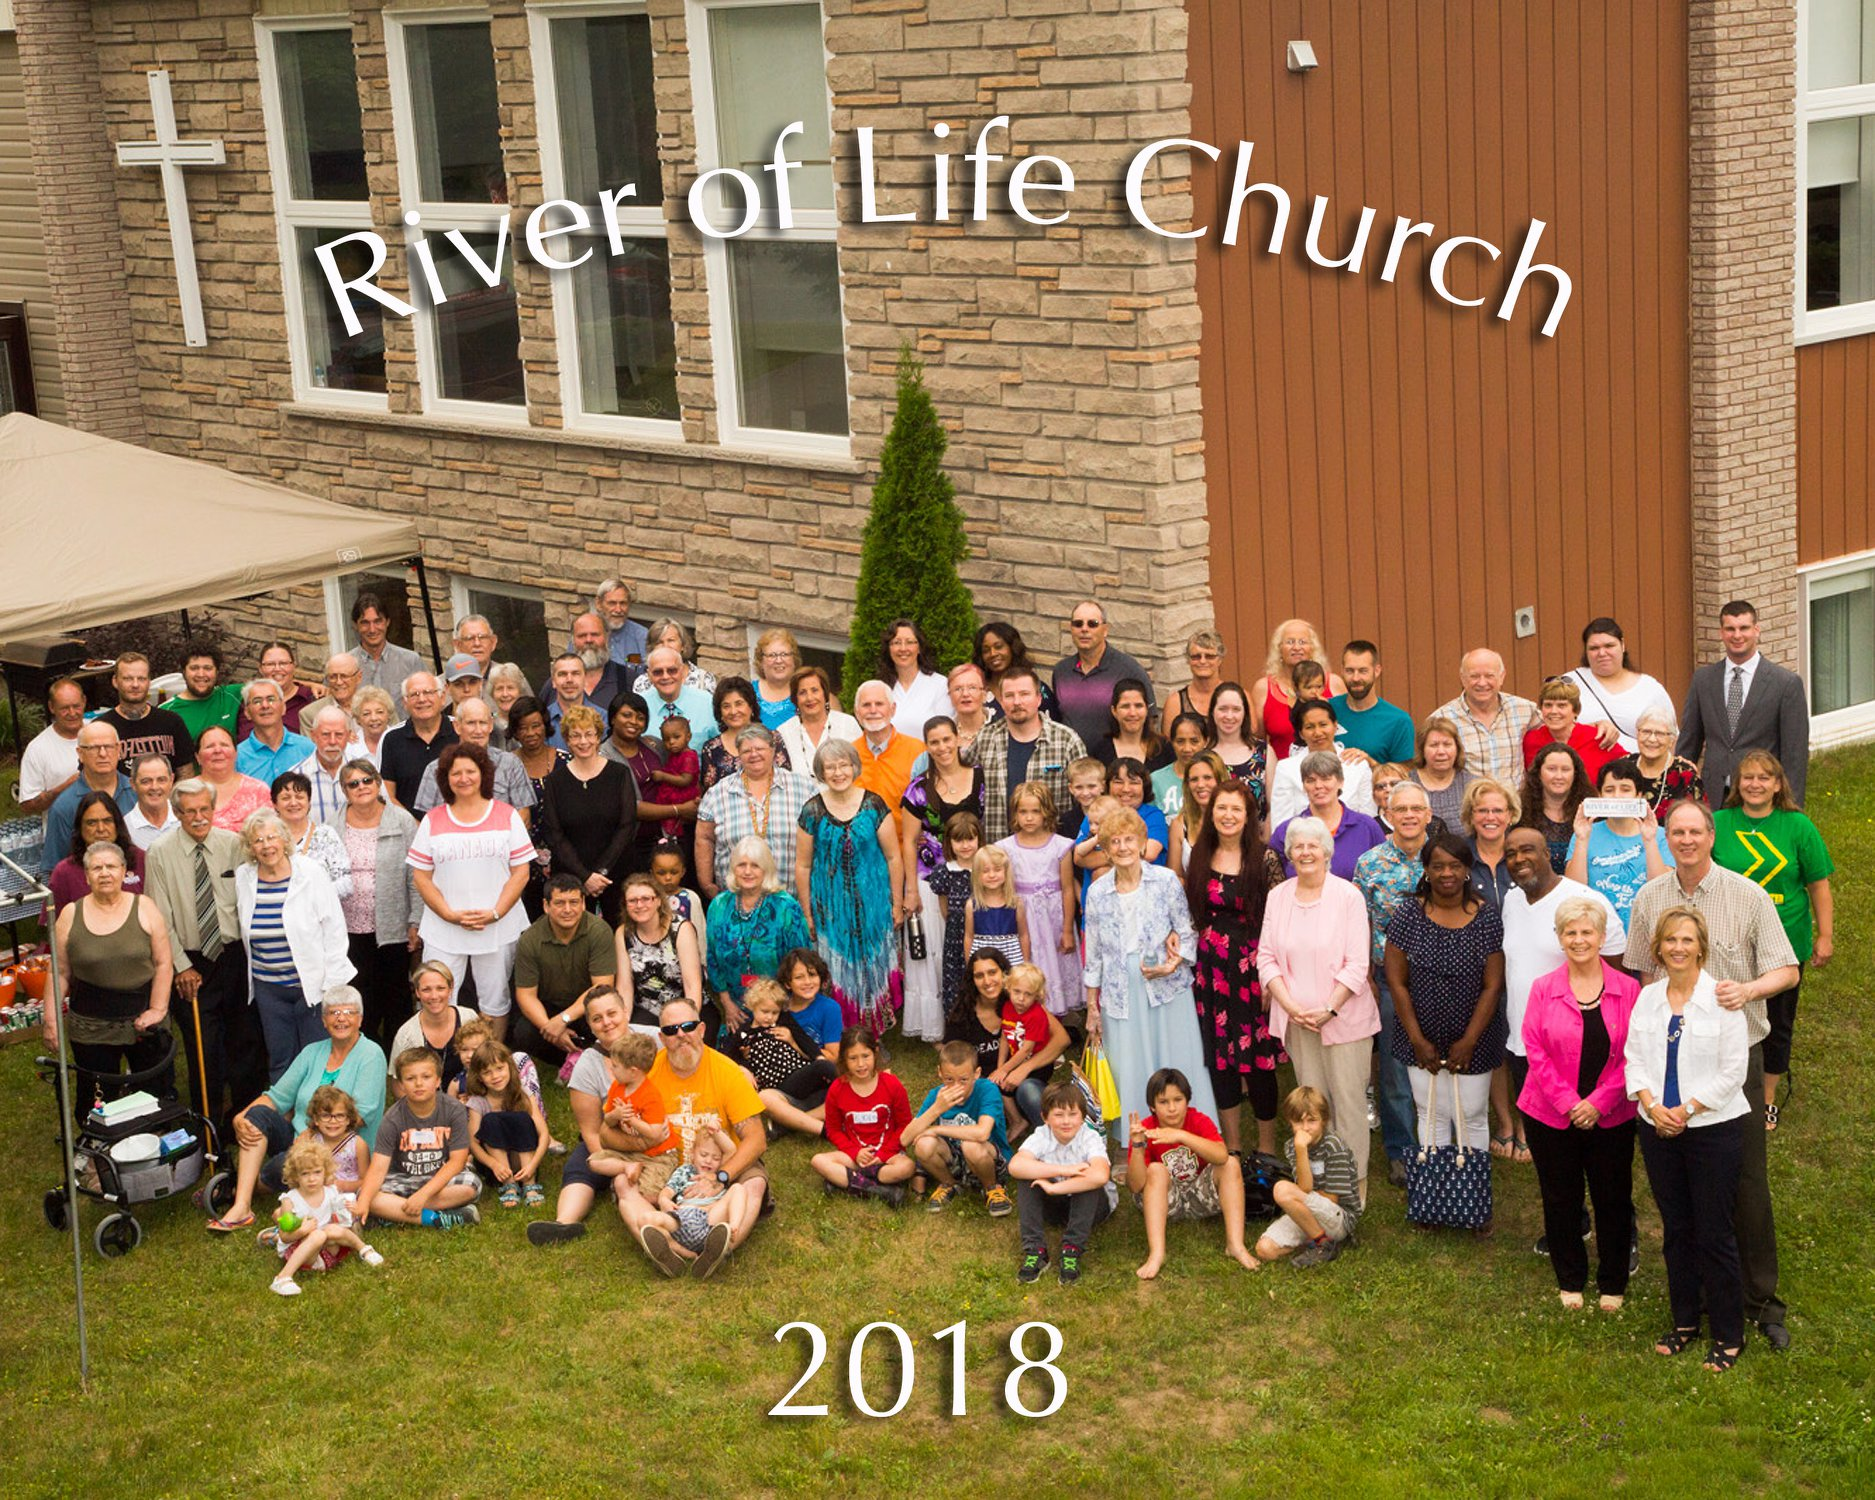 River of Life Midland - 45th Anniversary